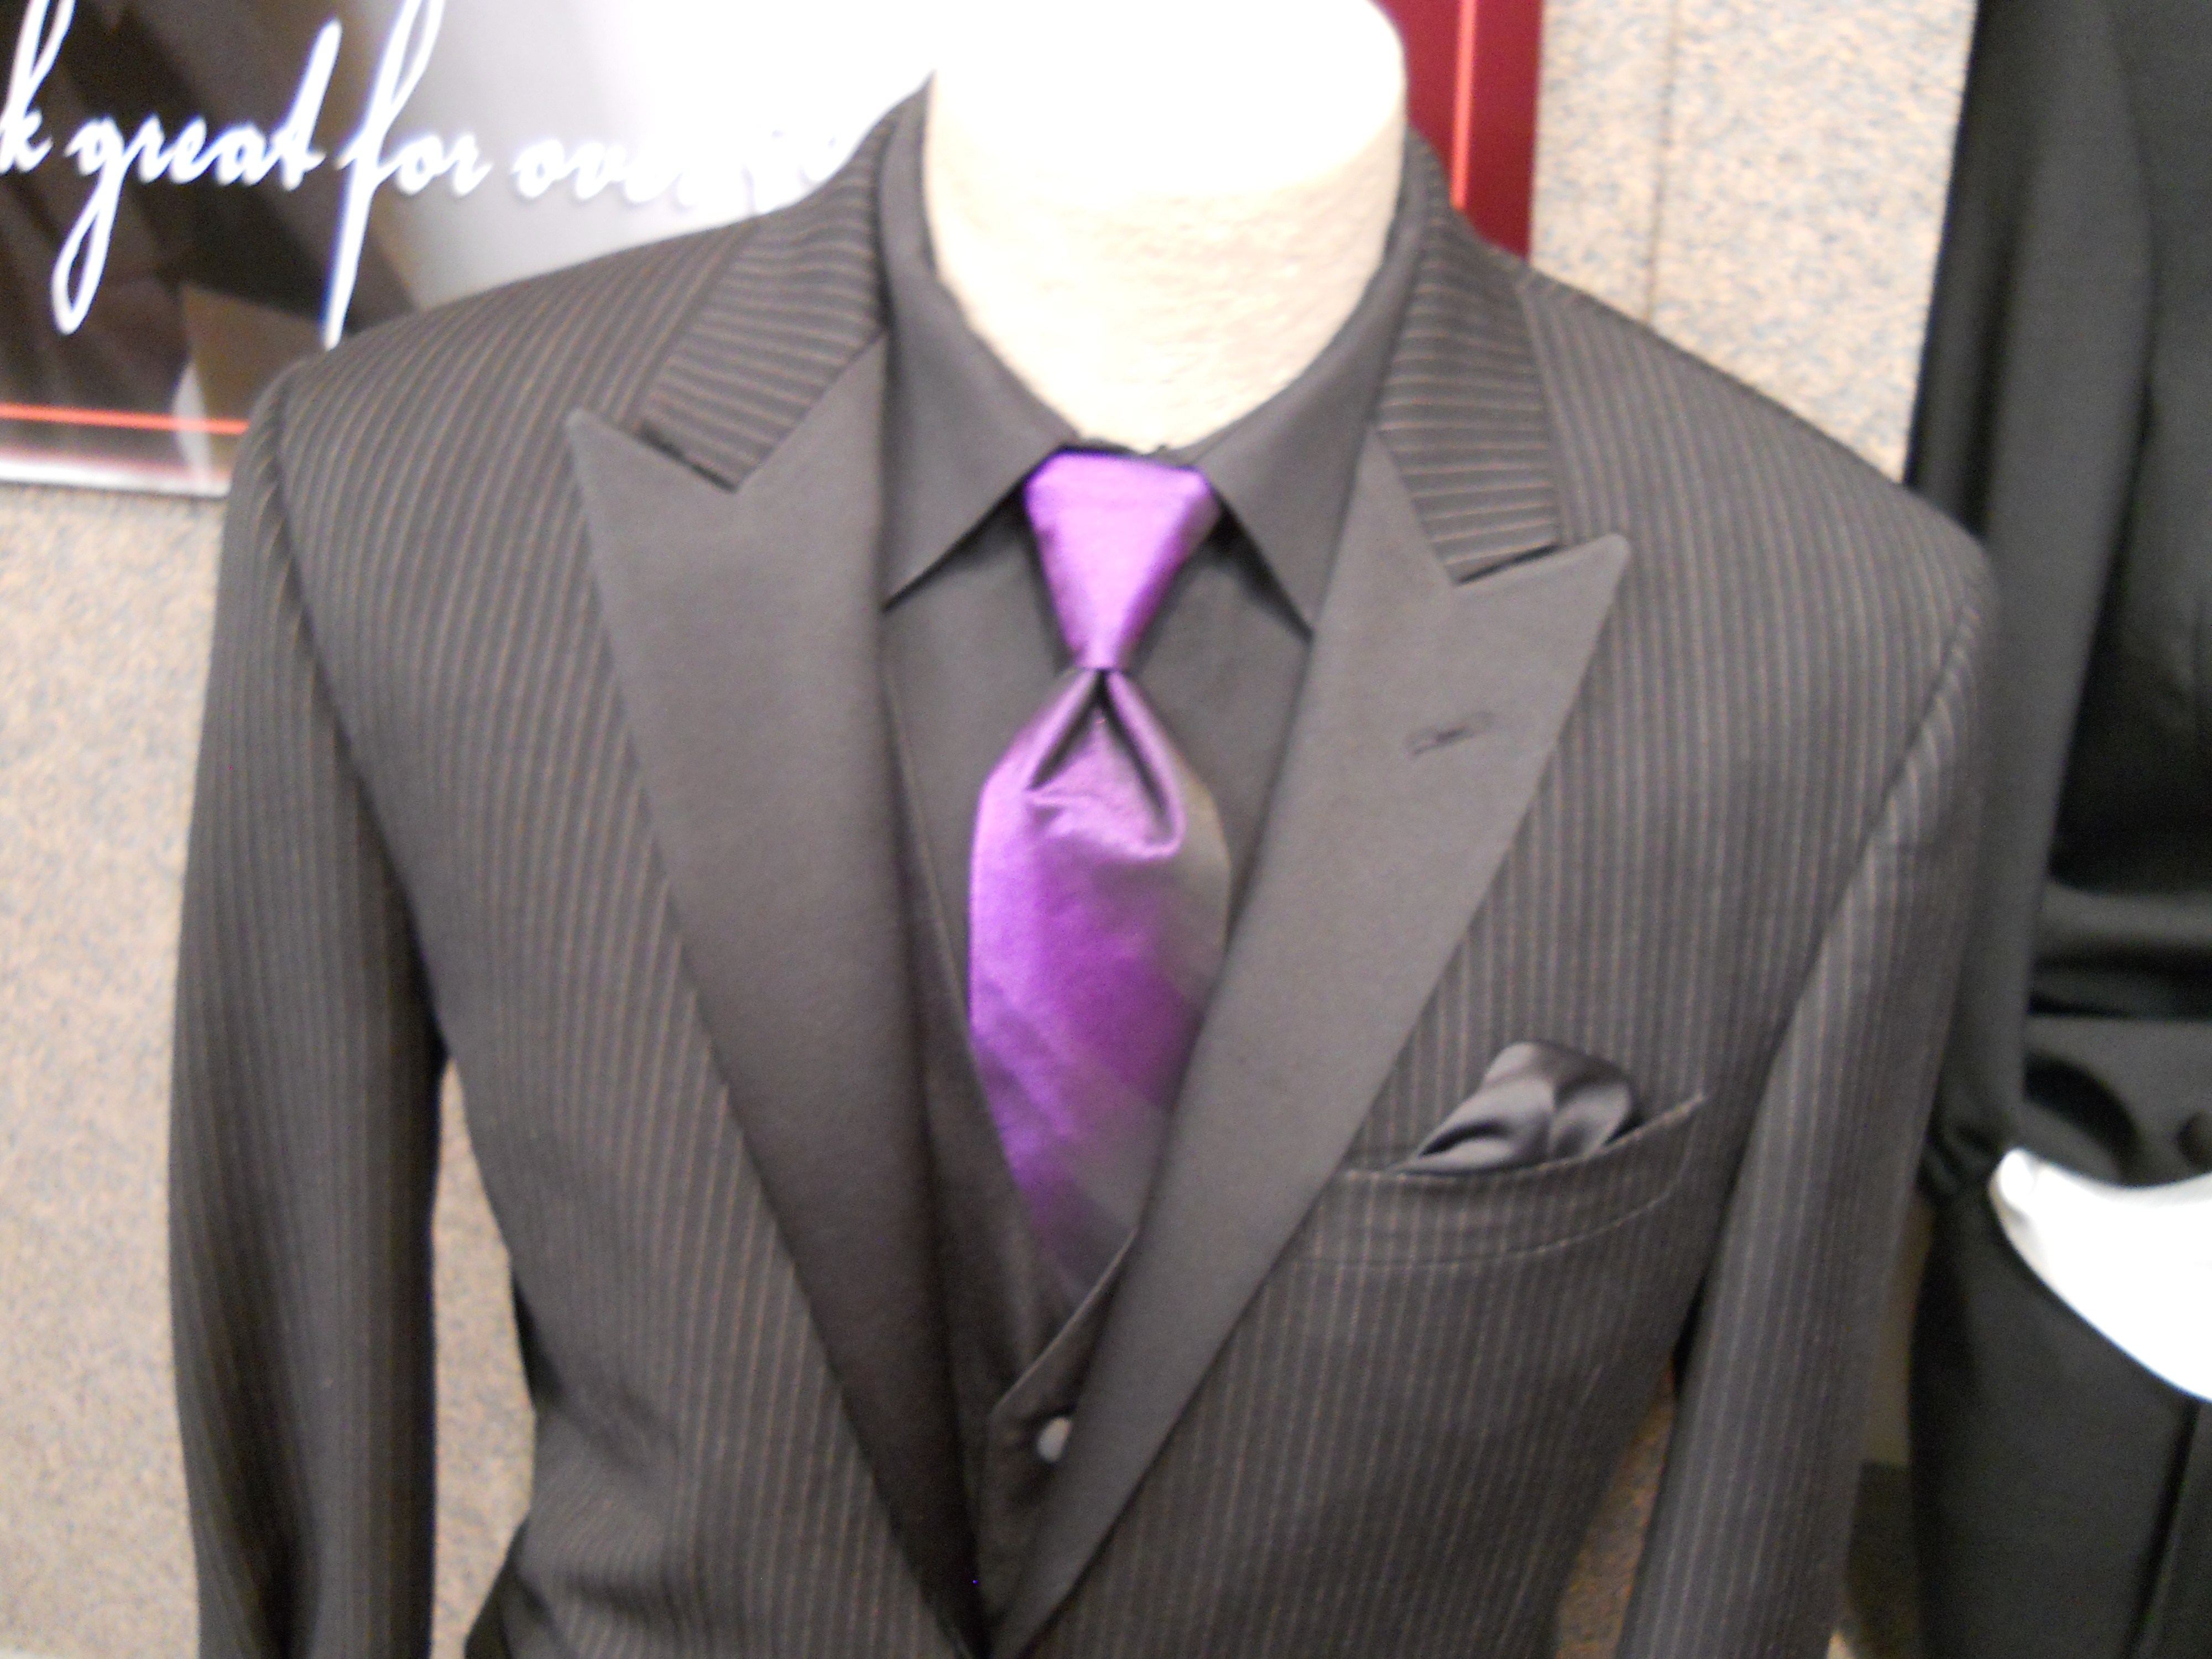 Fashion, Men's Formal Wear, Guys, Tuxedo, The